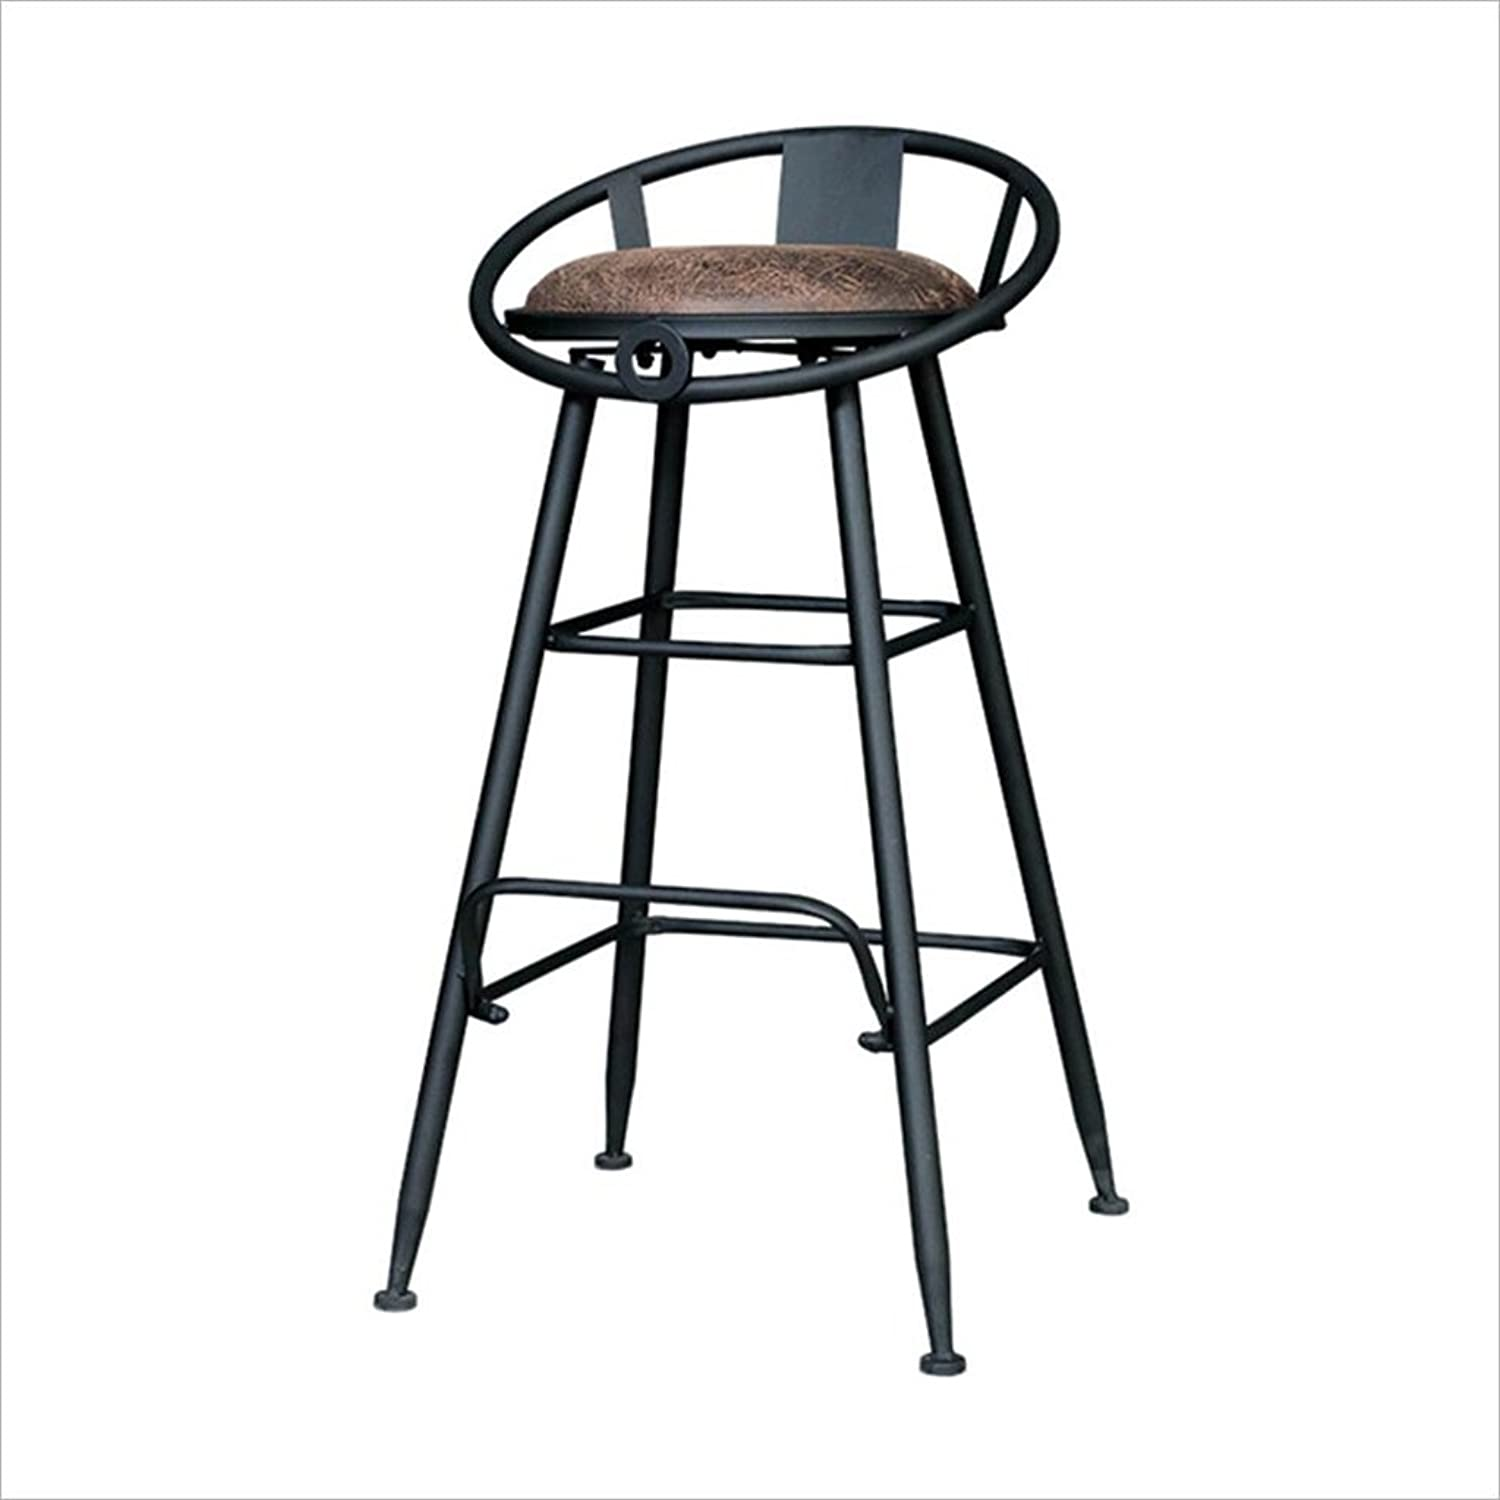 Bar Chairs, Iron Chair Lounge Chair Round Stool High Stool Dining Chair Retro Style 464674Cm